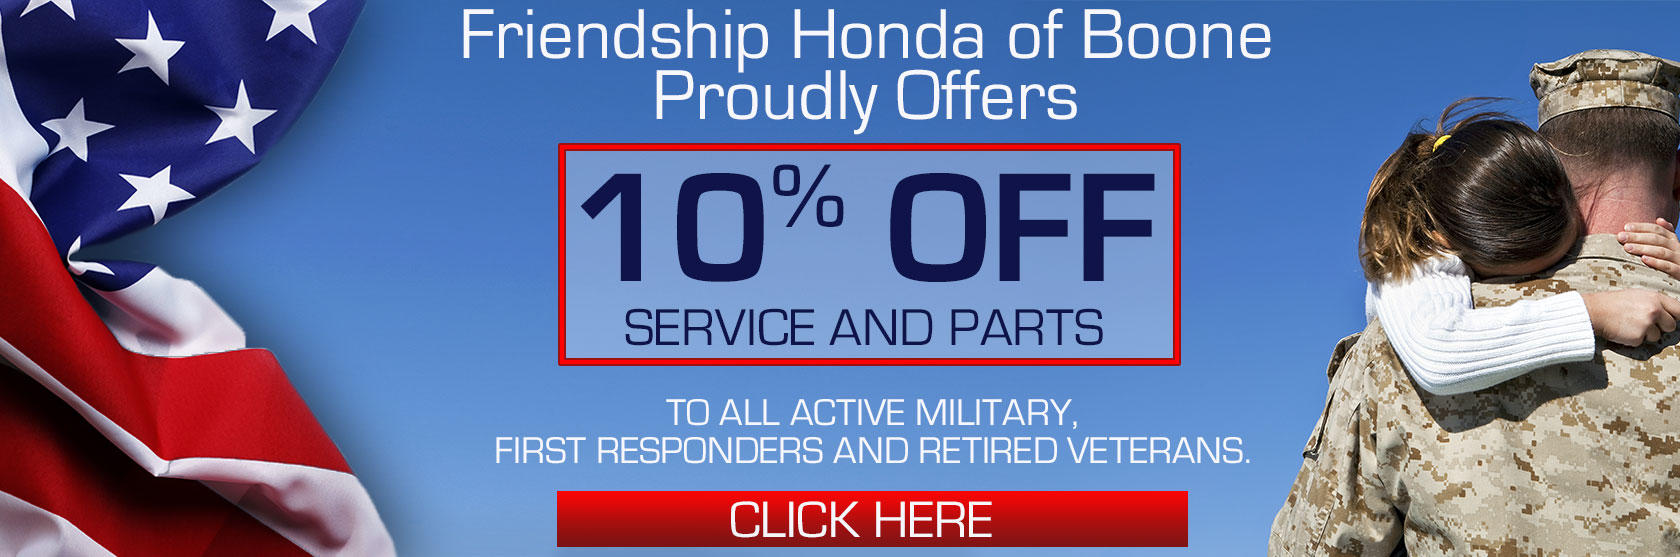 friendship honda of boone boone nc new used cars. Black Bedroom Furniture Sets. Home Design Ideas